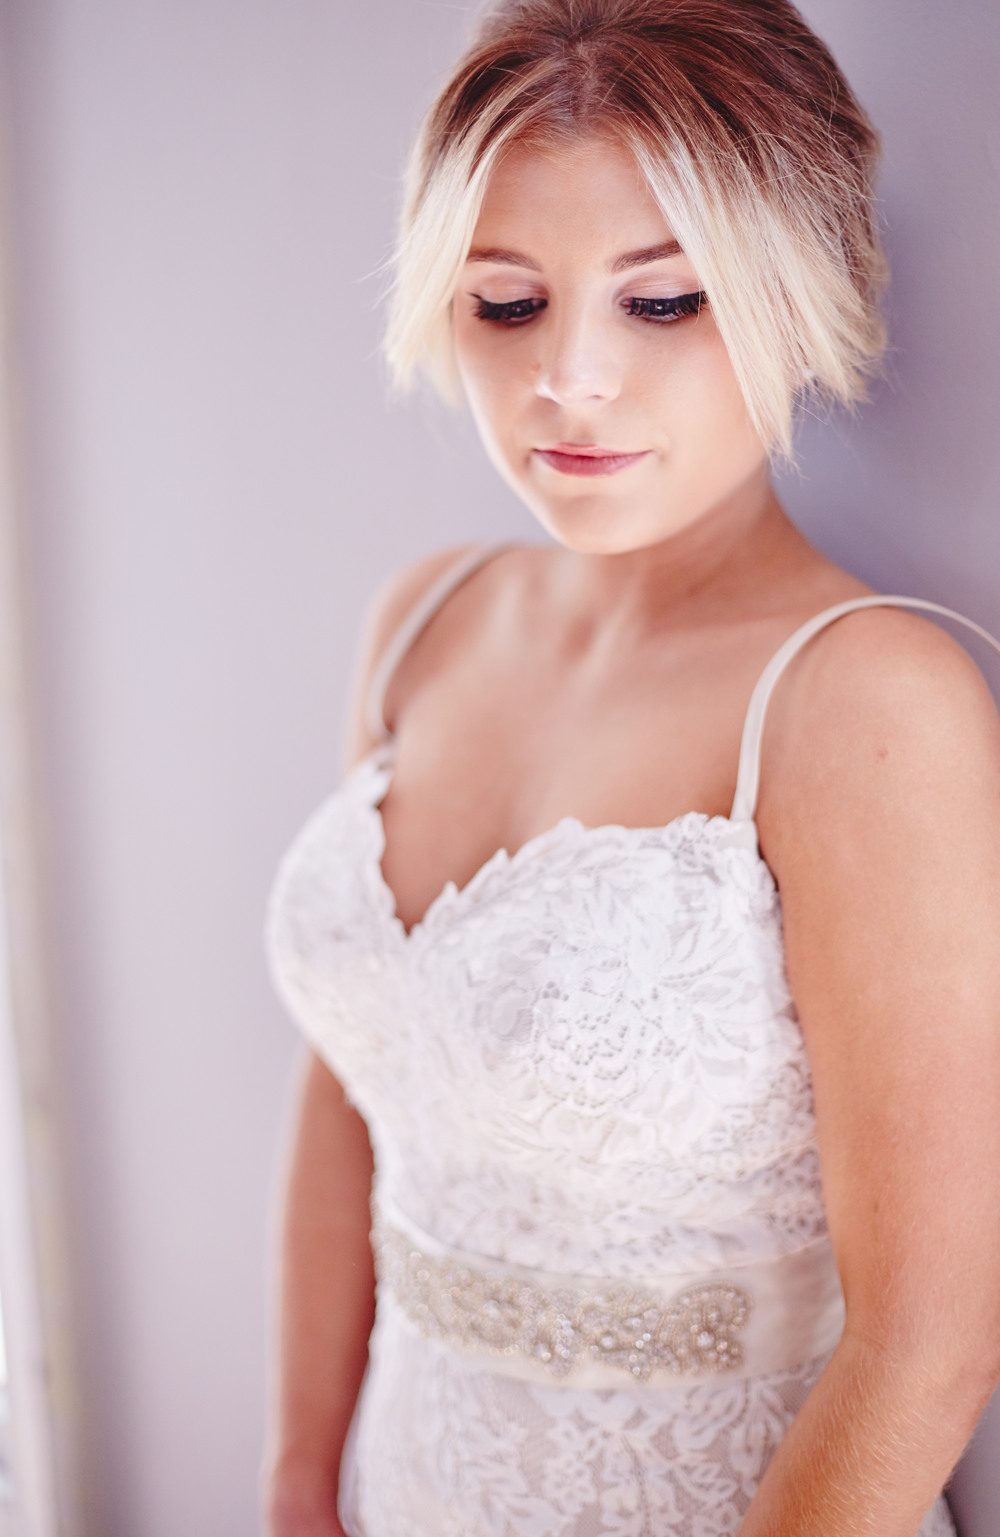 Styled_Session_Becca_Bridal_Portraits_Sarah_Tau_Photography_HOB_Studio_285 122.jpg